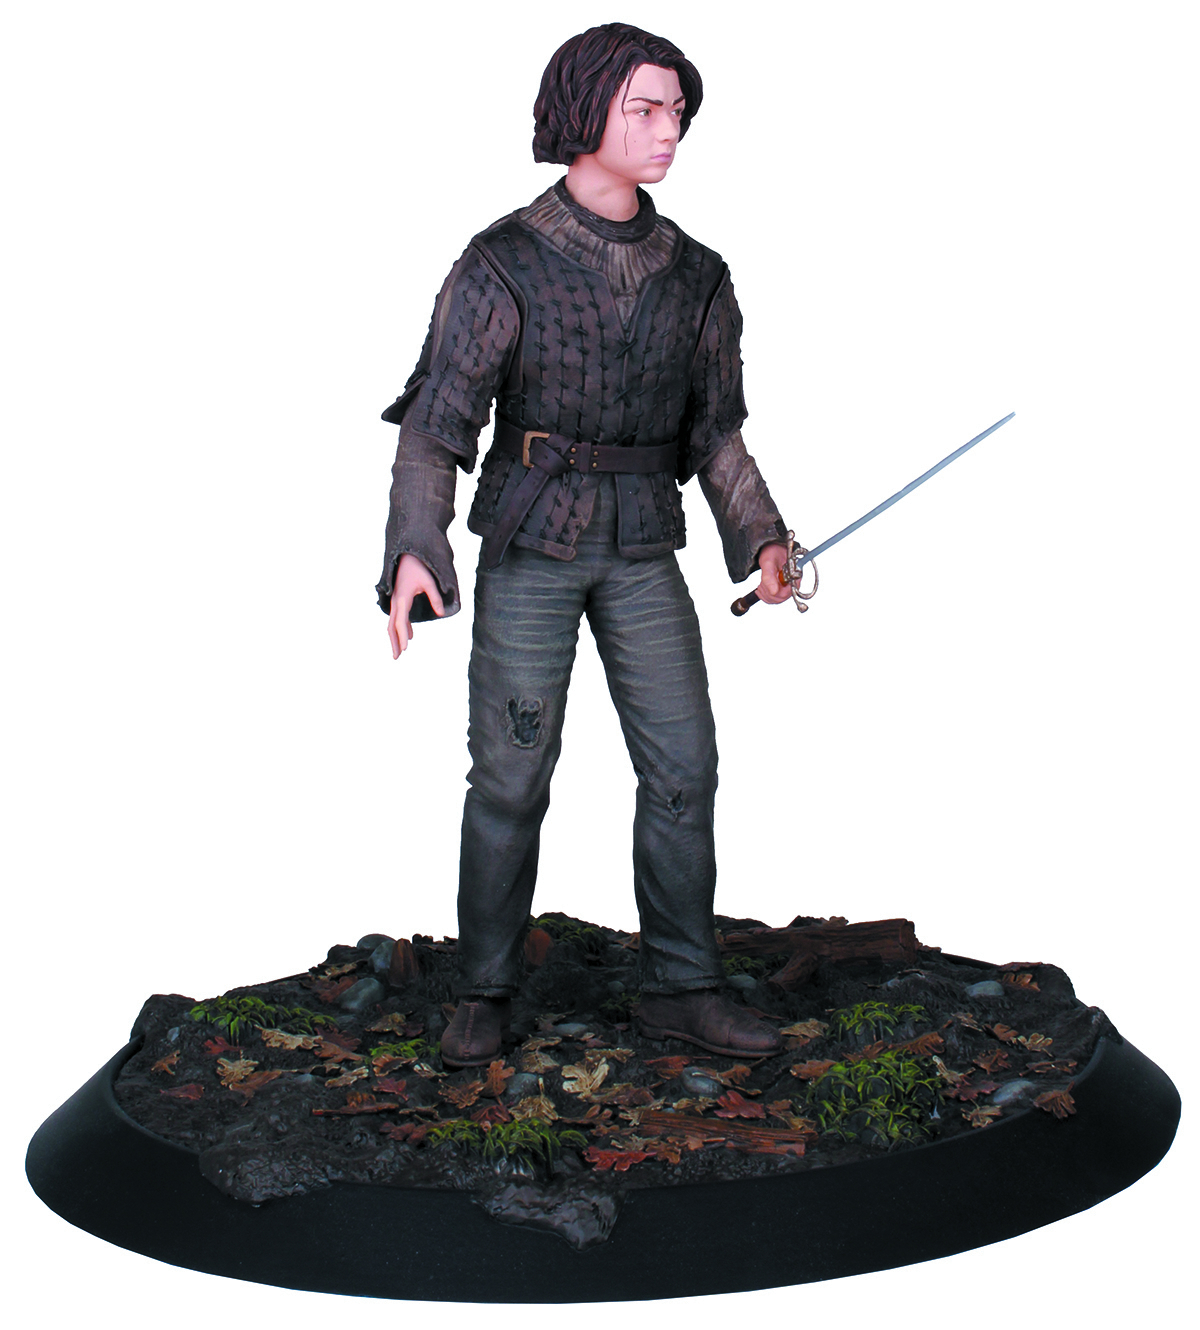 GAME OF THRONES STATUE ARYA STARK